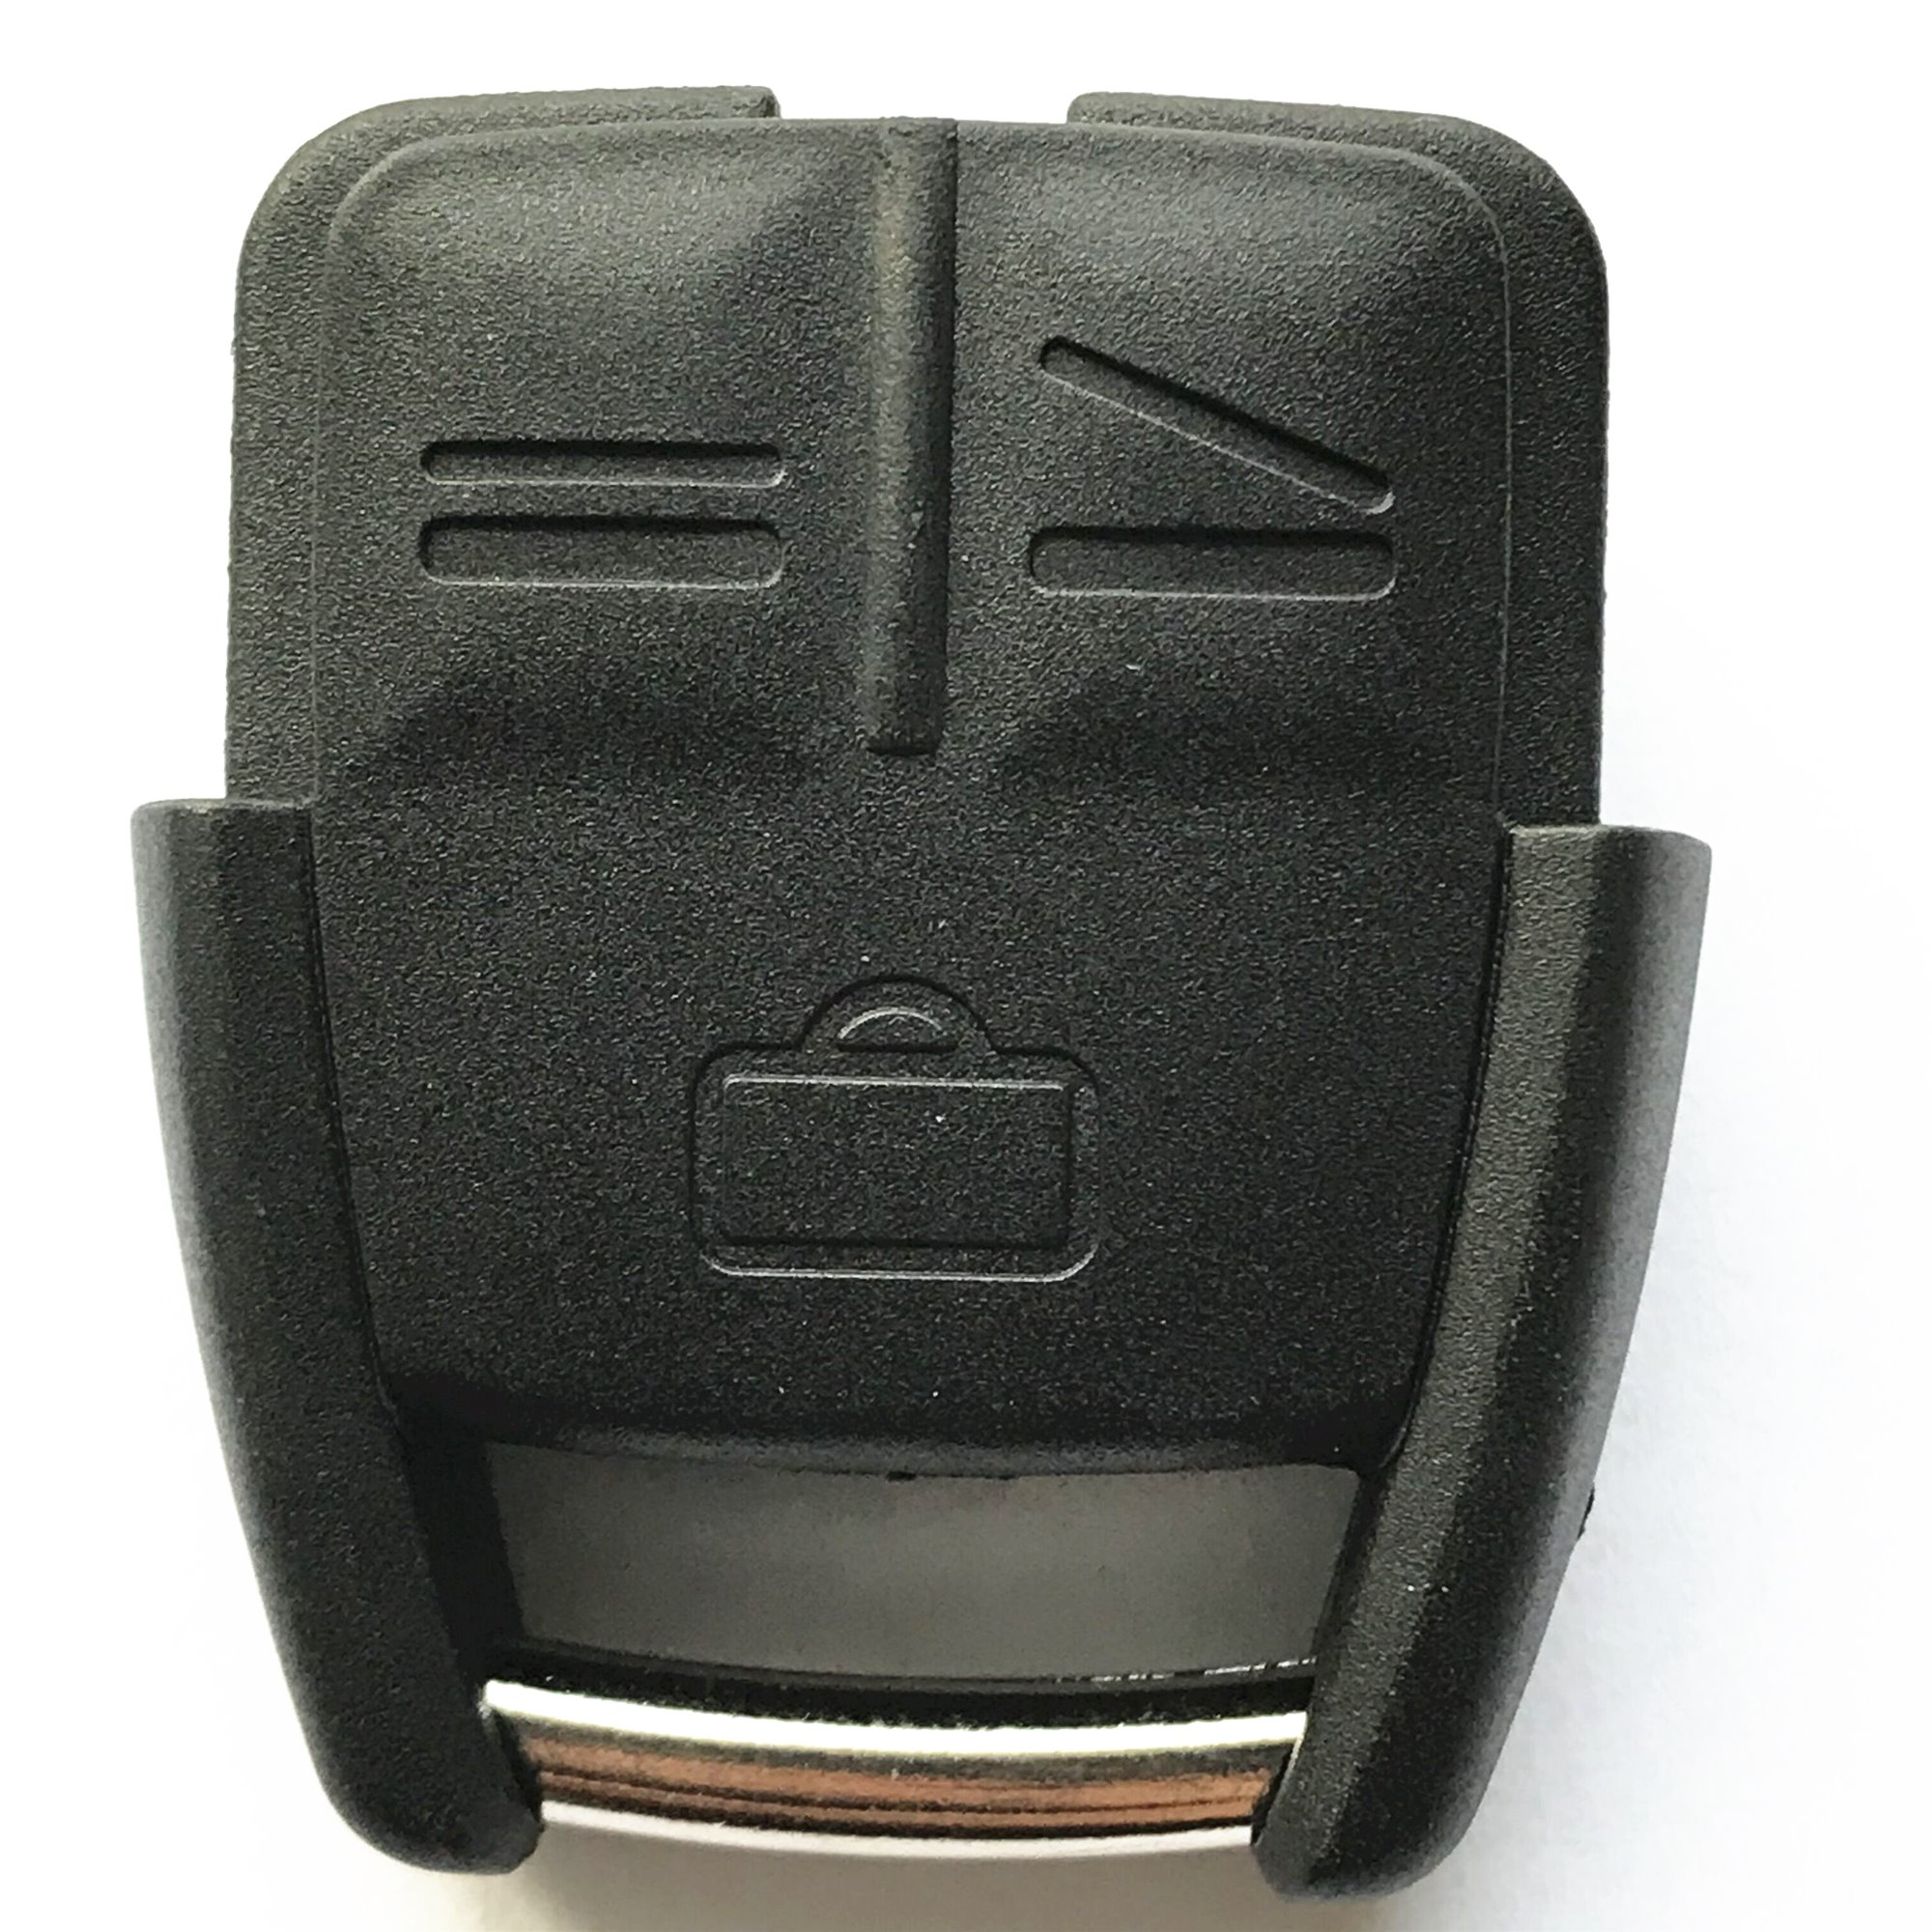 3 Buttons 434 MHz Remote Control Key For Opel